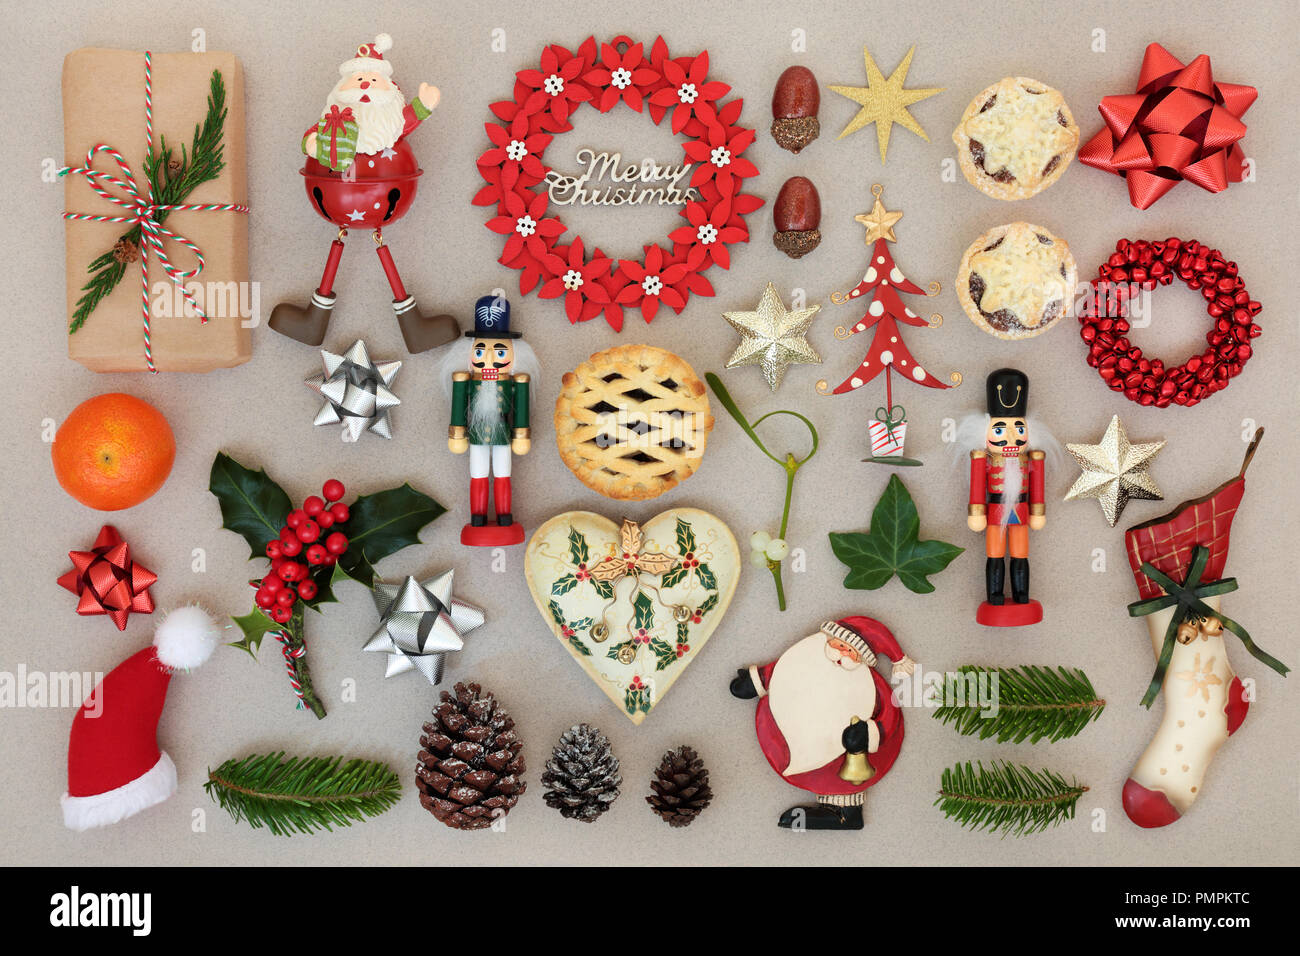 christmas decorations with food flora bows and traditional symbols forming an abstract background festive christmas card for the holiday season